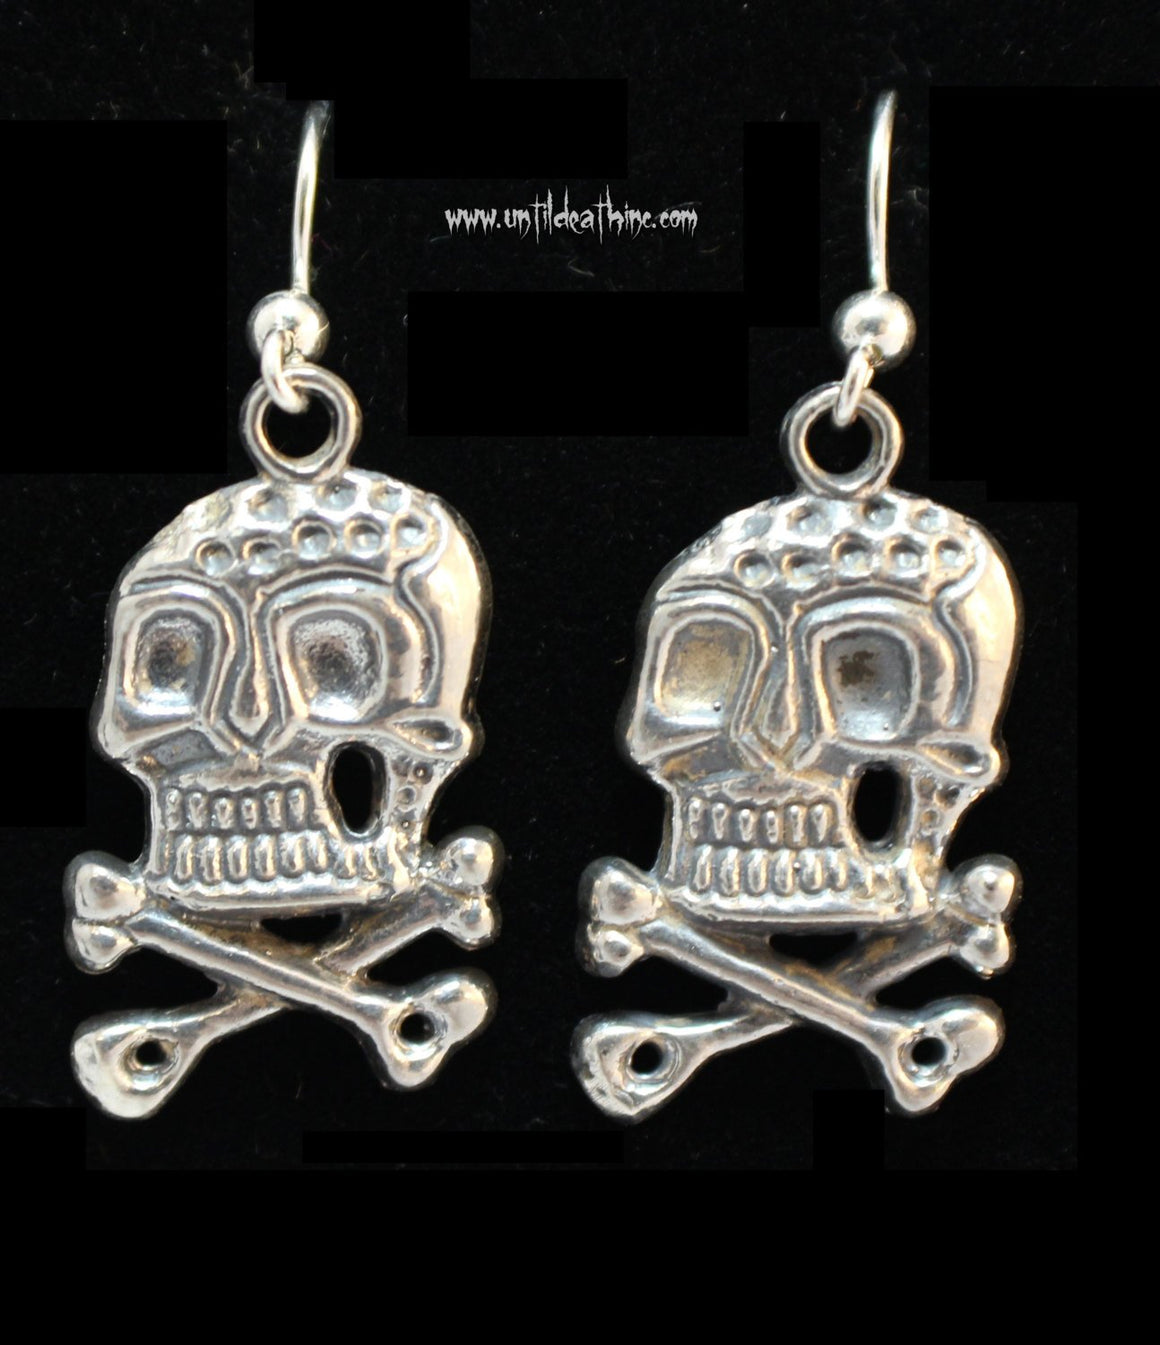 German Style WWII Skull in STERLING SILVER